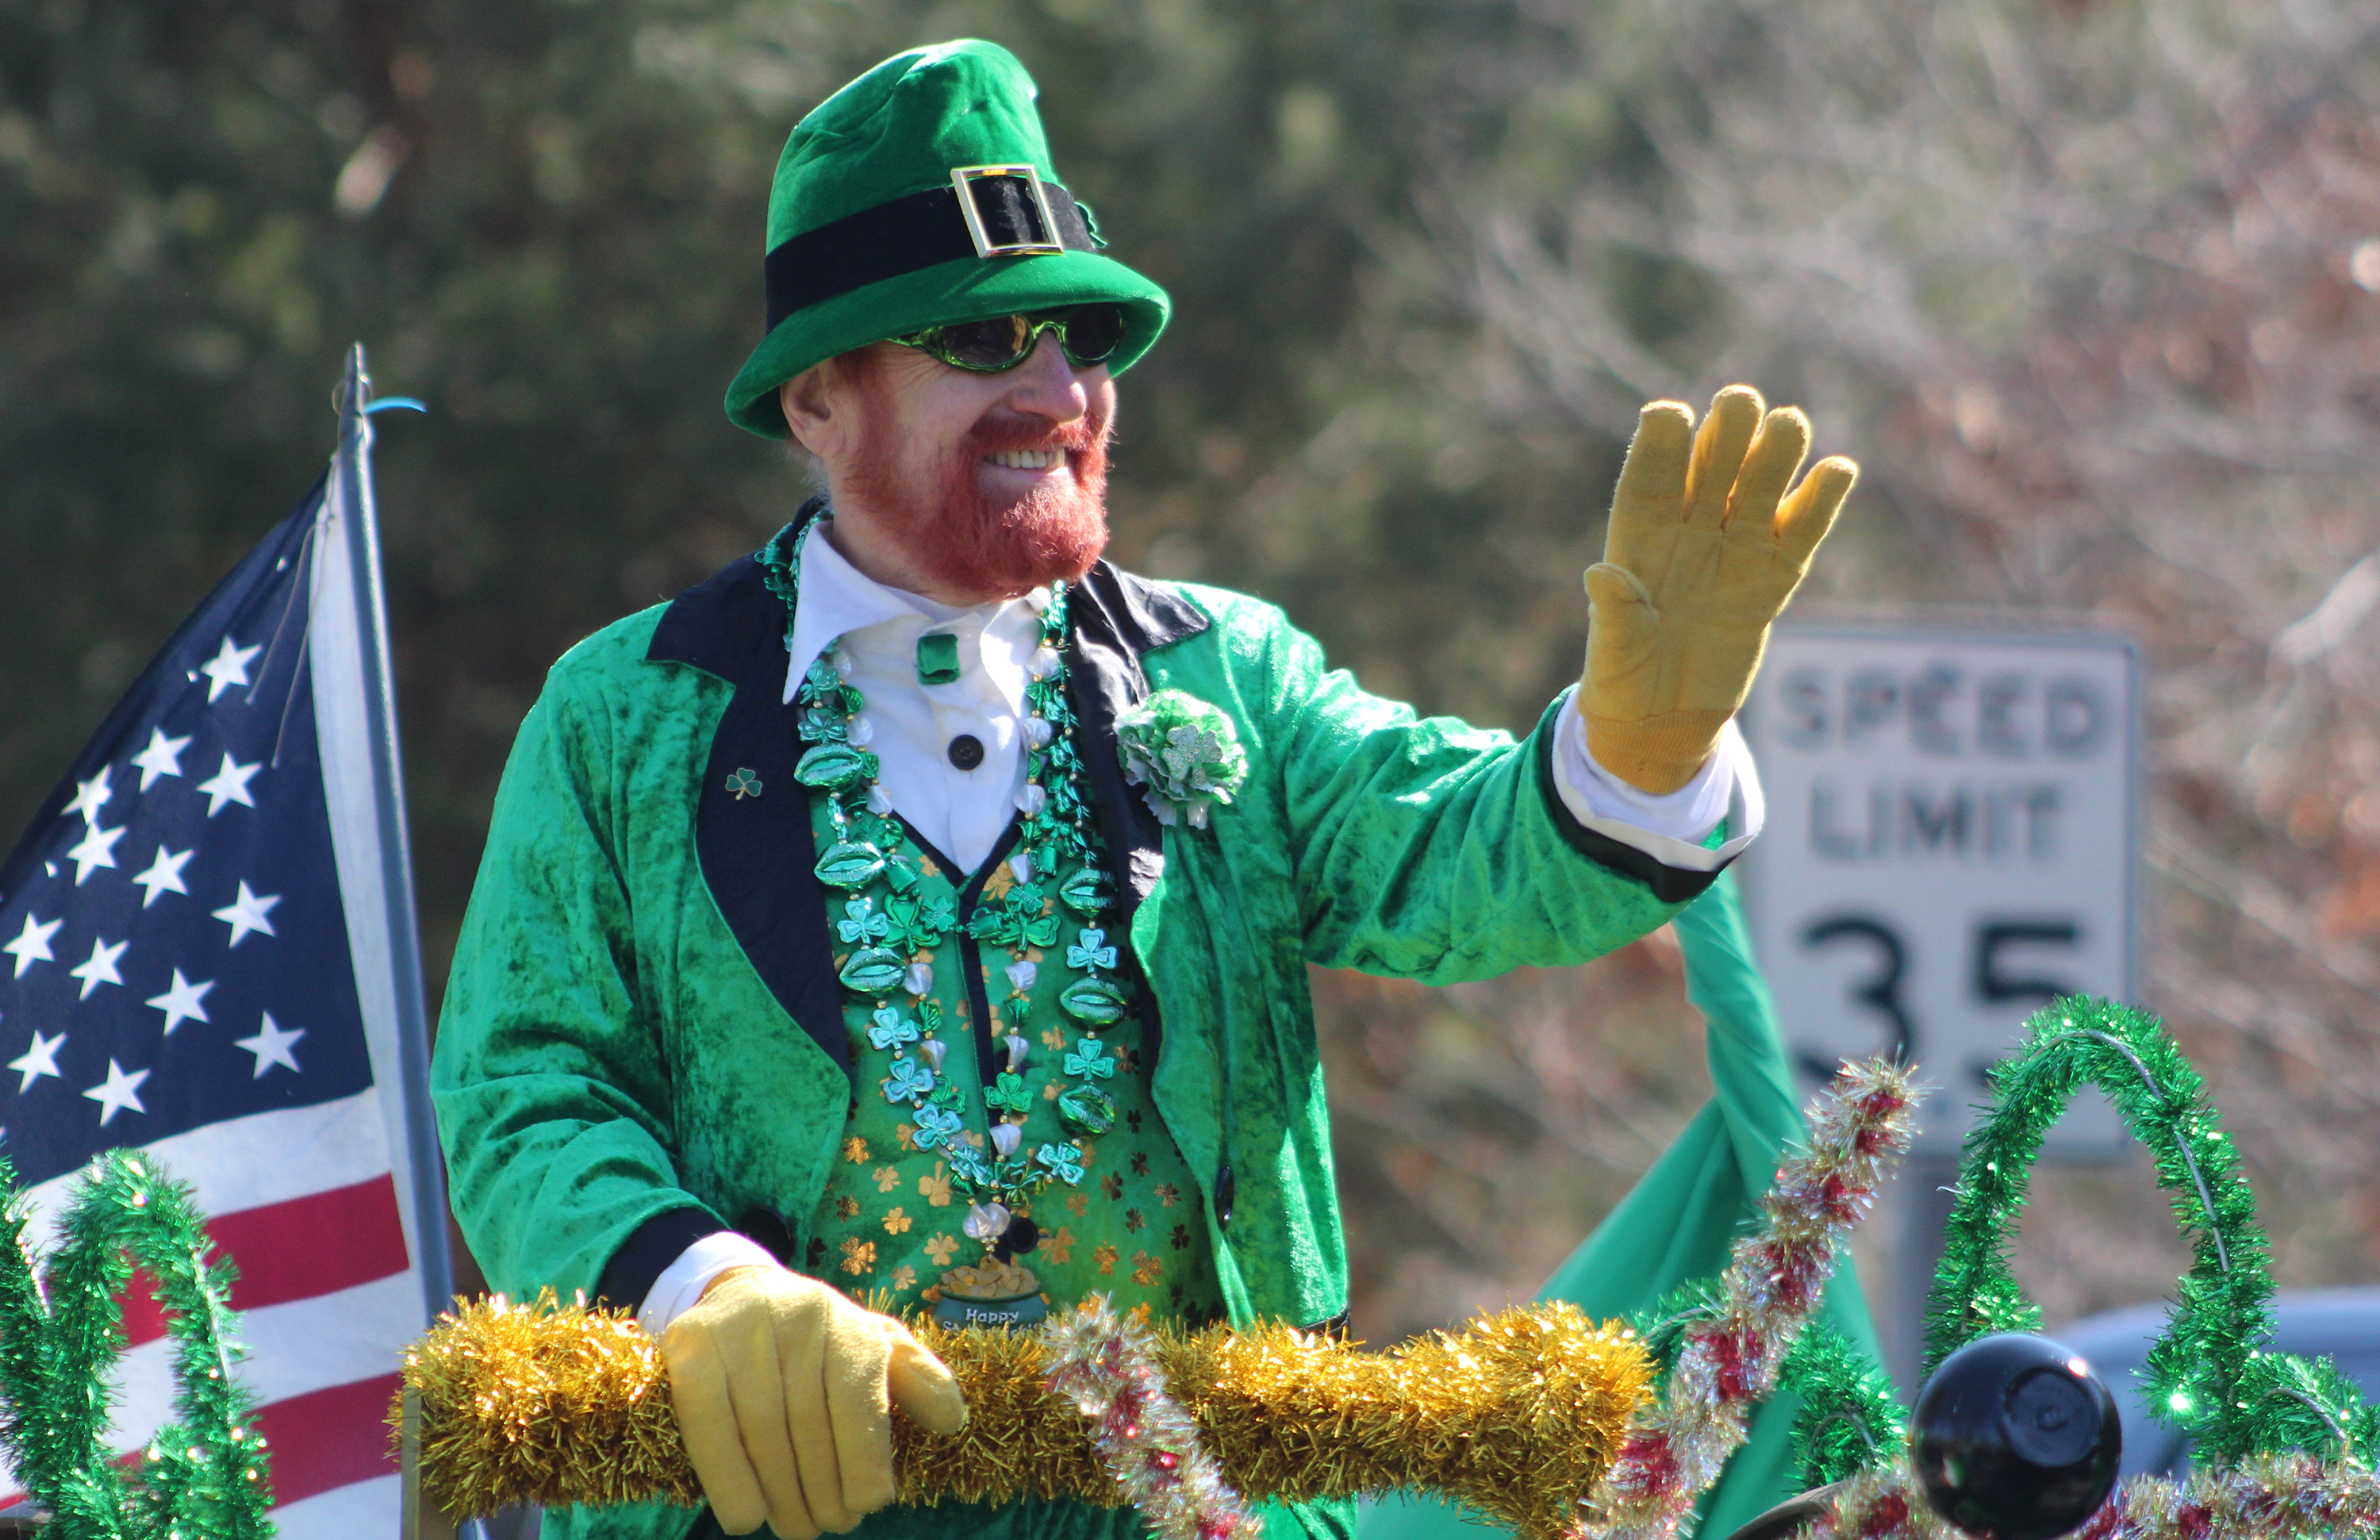 Jim Starks, grand marshal for the Mooseyard St. Patrick's Day parade, waves to onlookers as his float passes by near the beginning of the parade. There were plenty of people donning green for the annual event.(Lee Pulaski | NEW Media)